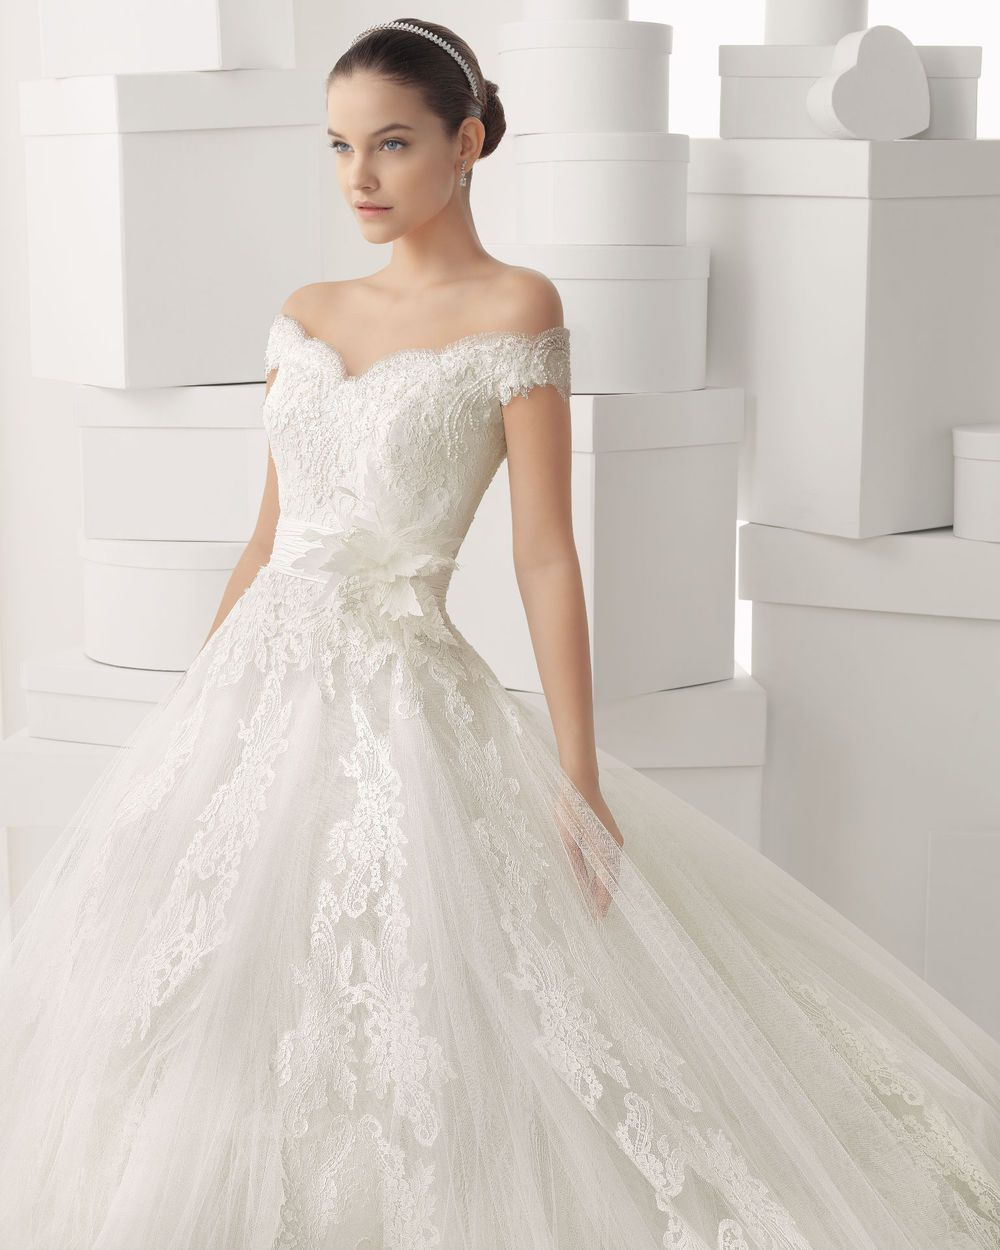 Buy 2014 Glamorous Off-The-Shoulder Ball Gown Lace Wedding Dress ...